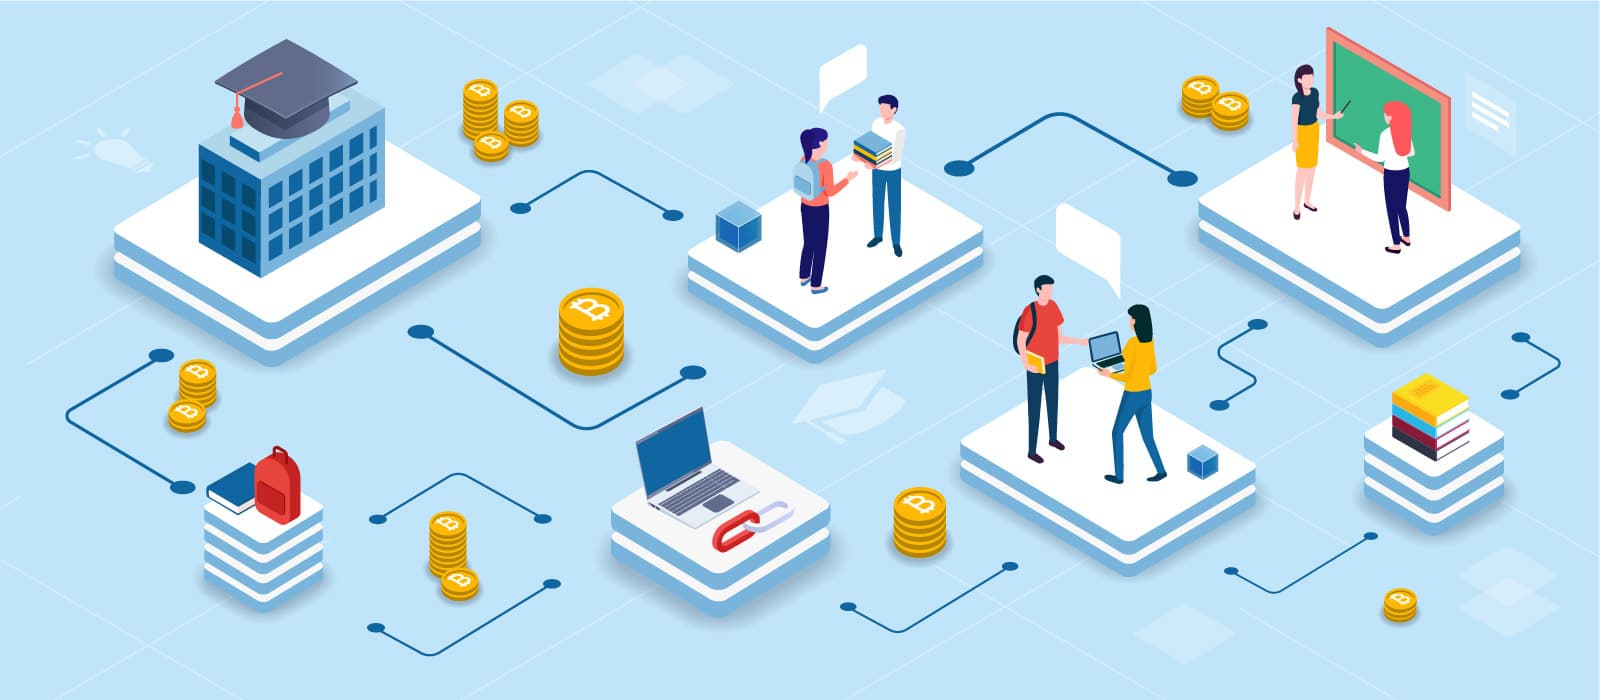 The Uses Of Blockchain In Education